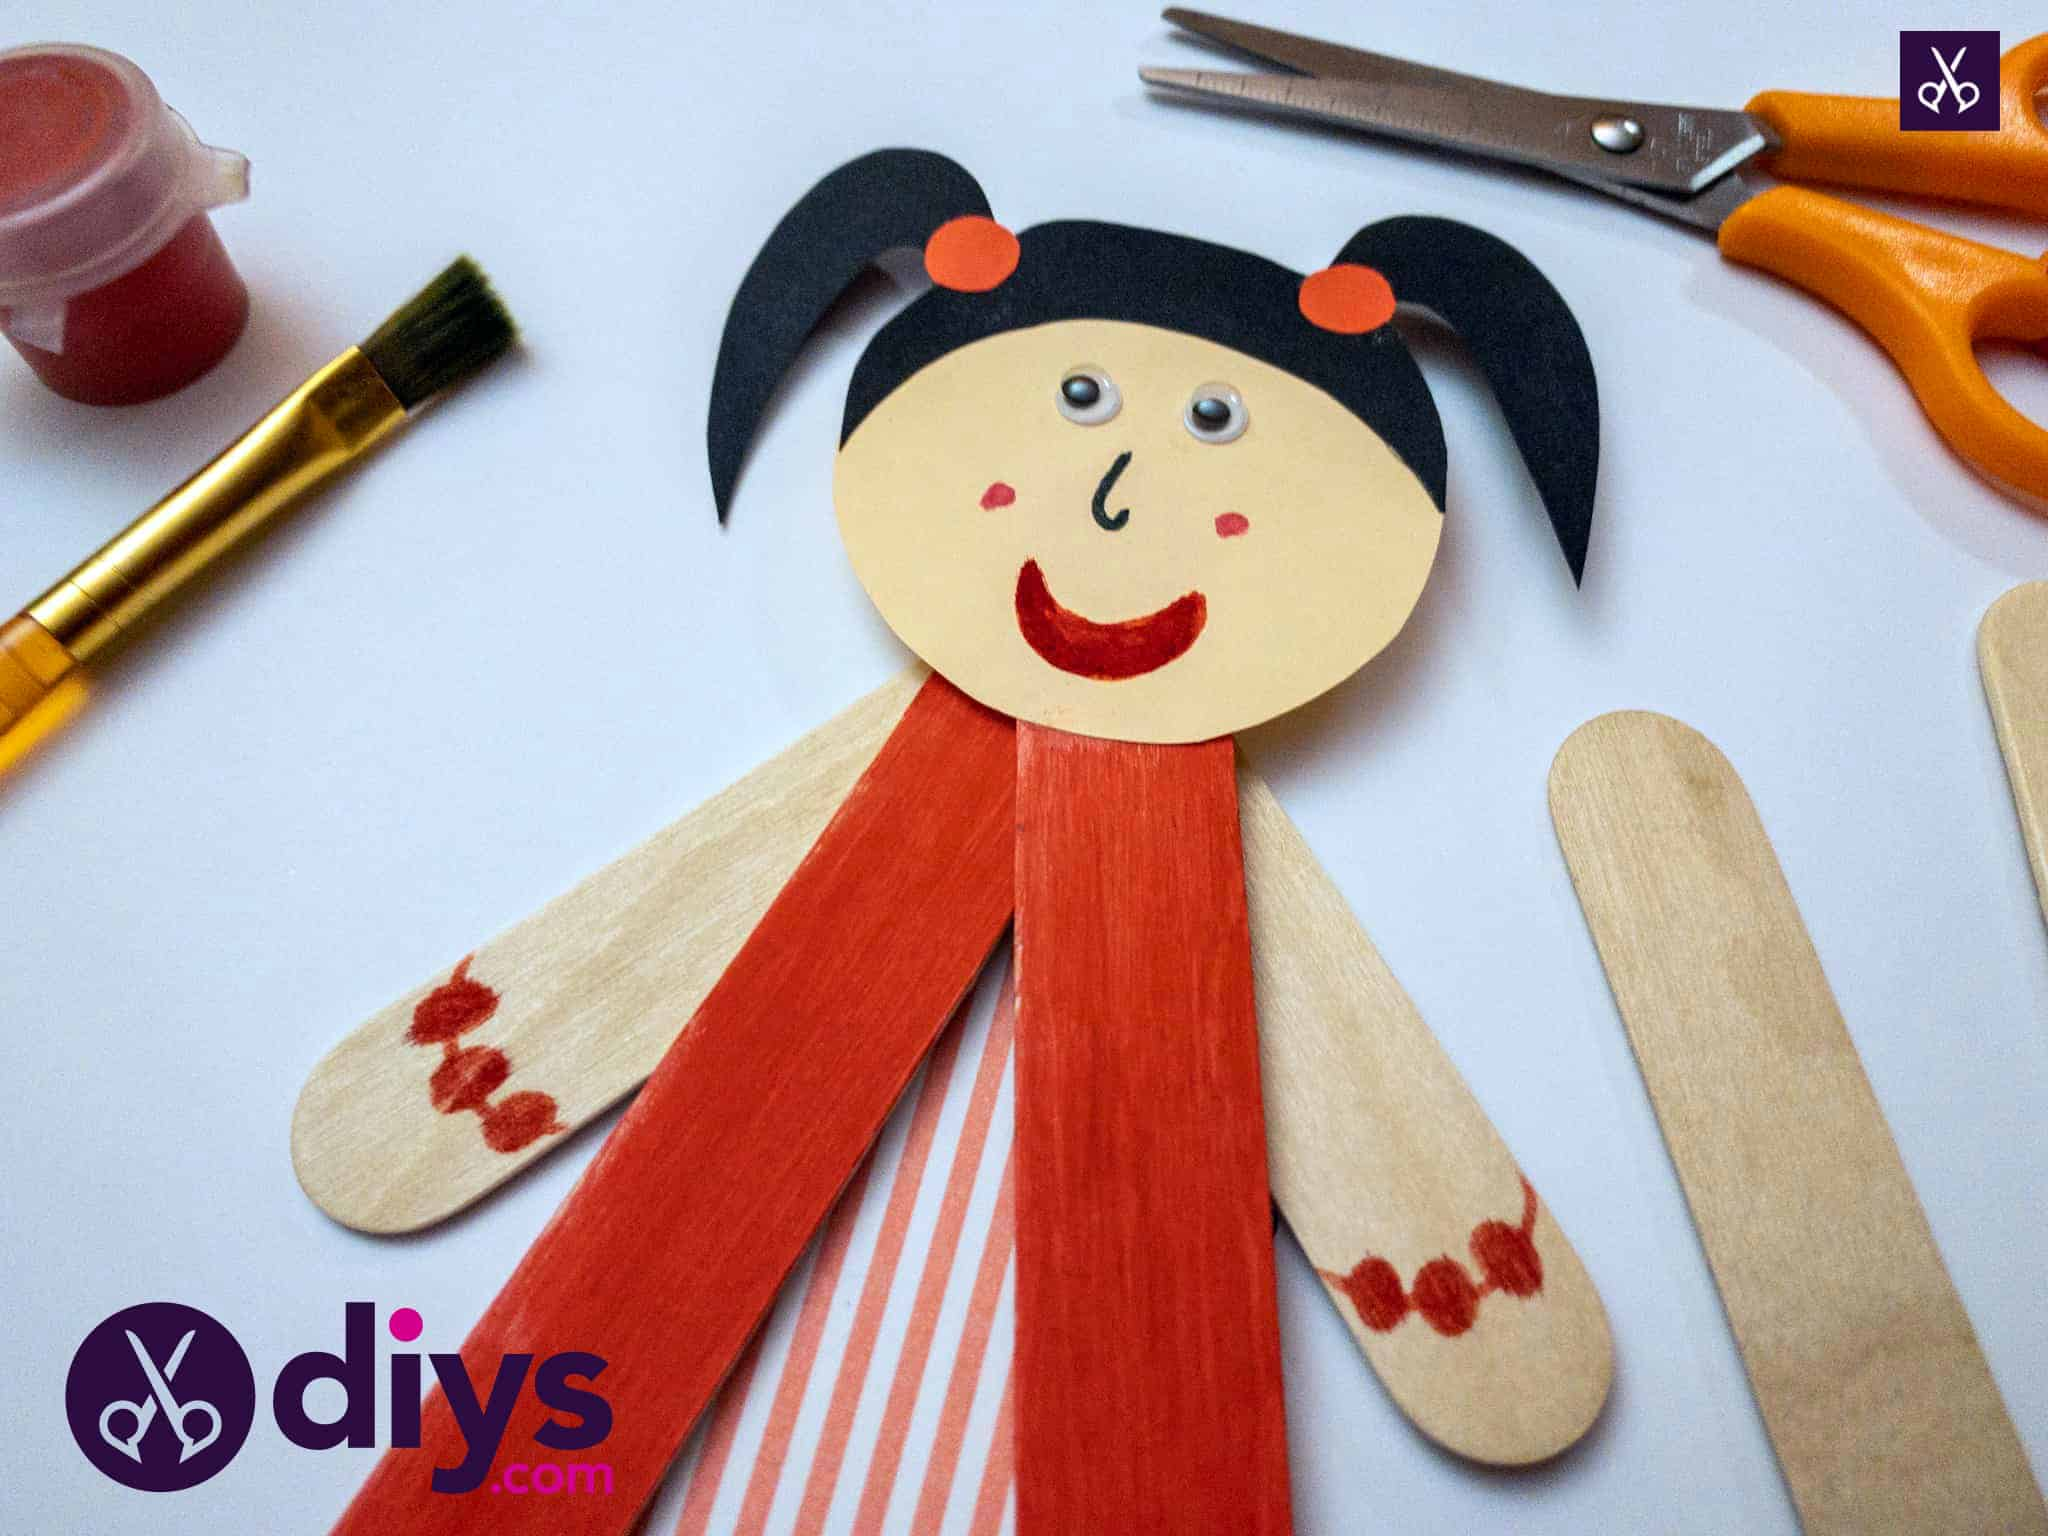 How to make a popsicle stick puppet for kids